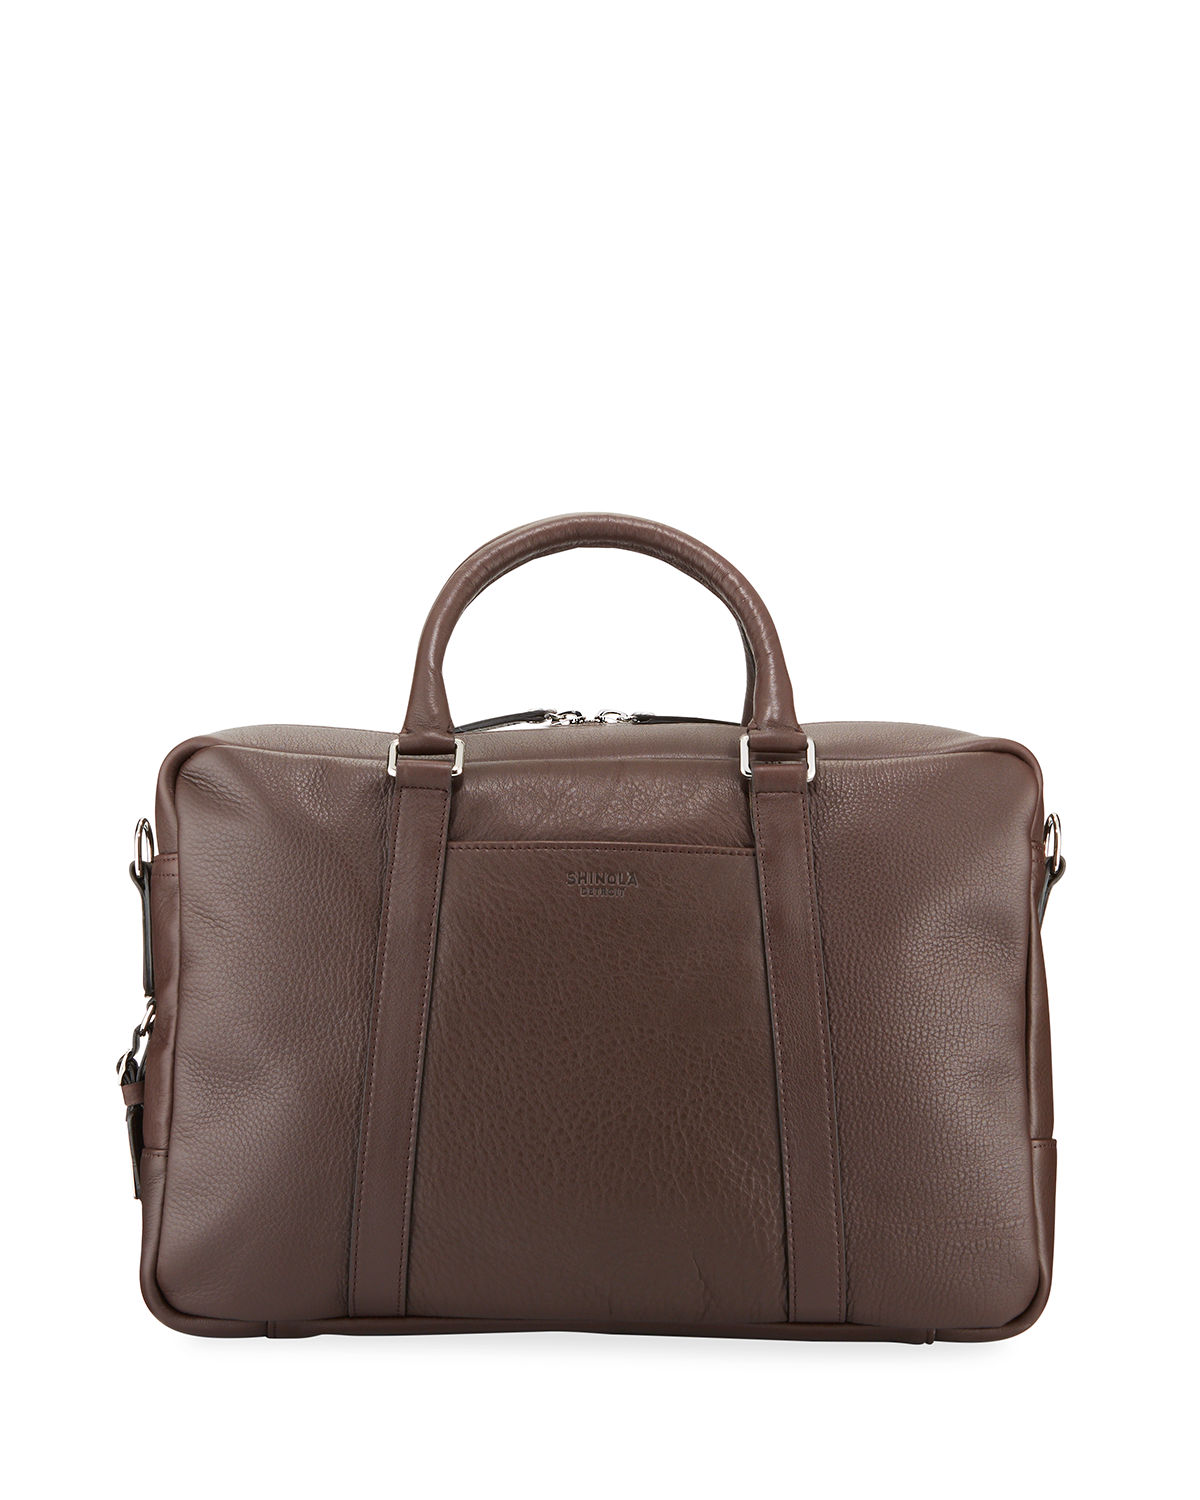 dfcb3c44cd5 Shinola Men s Slim Leather Briefcase